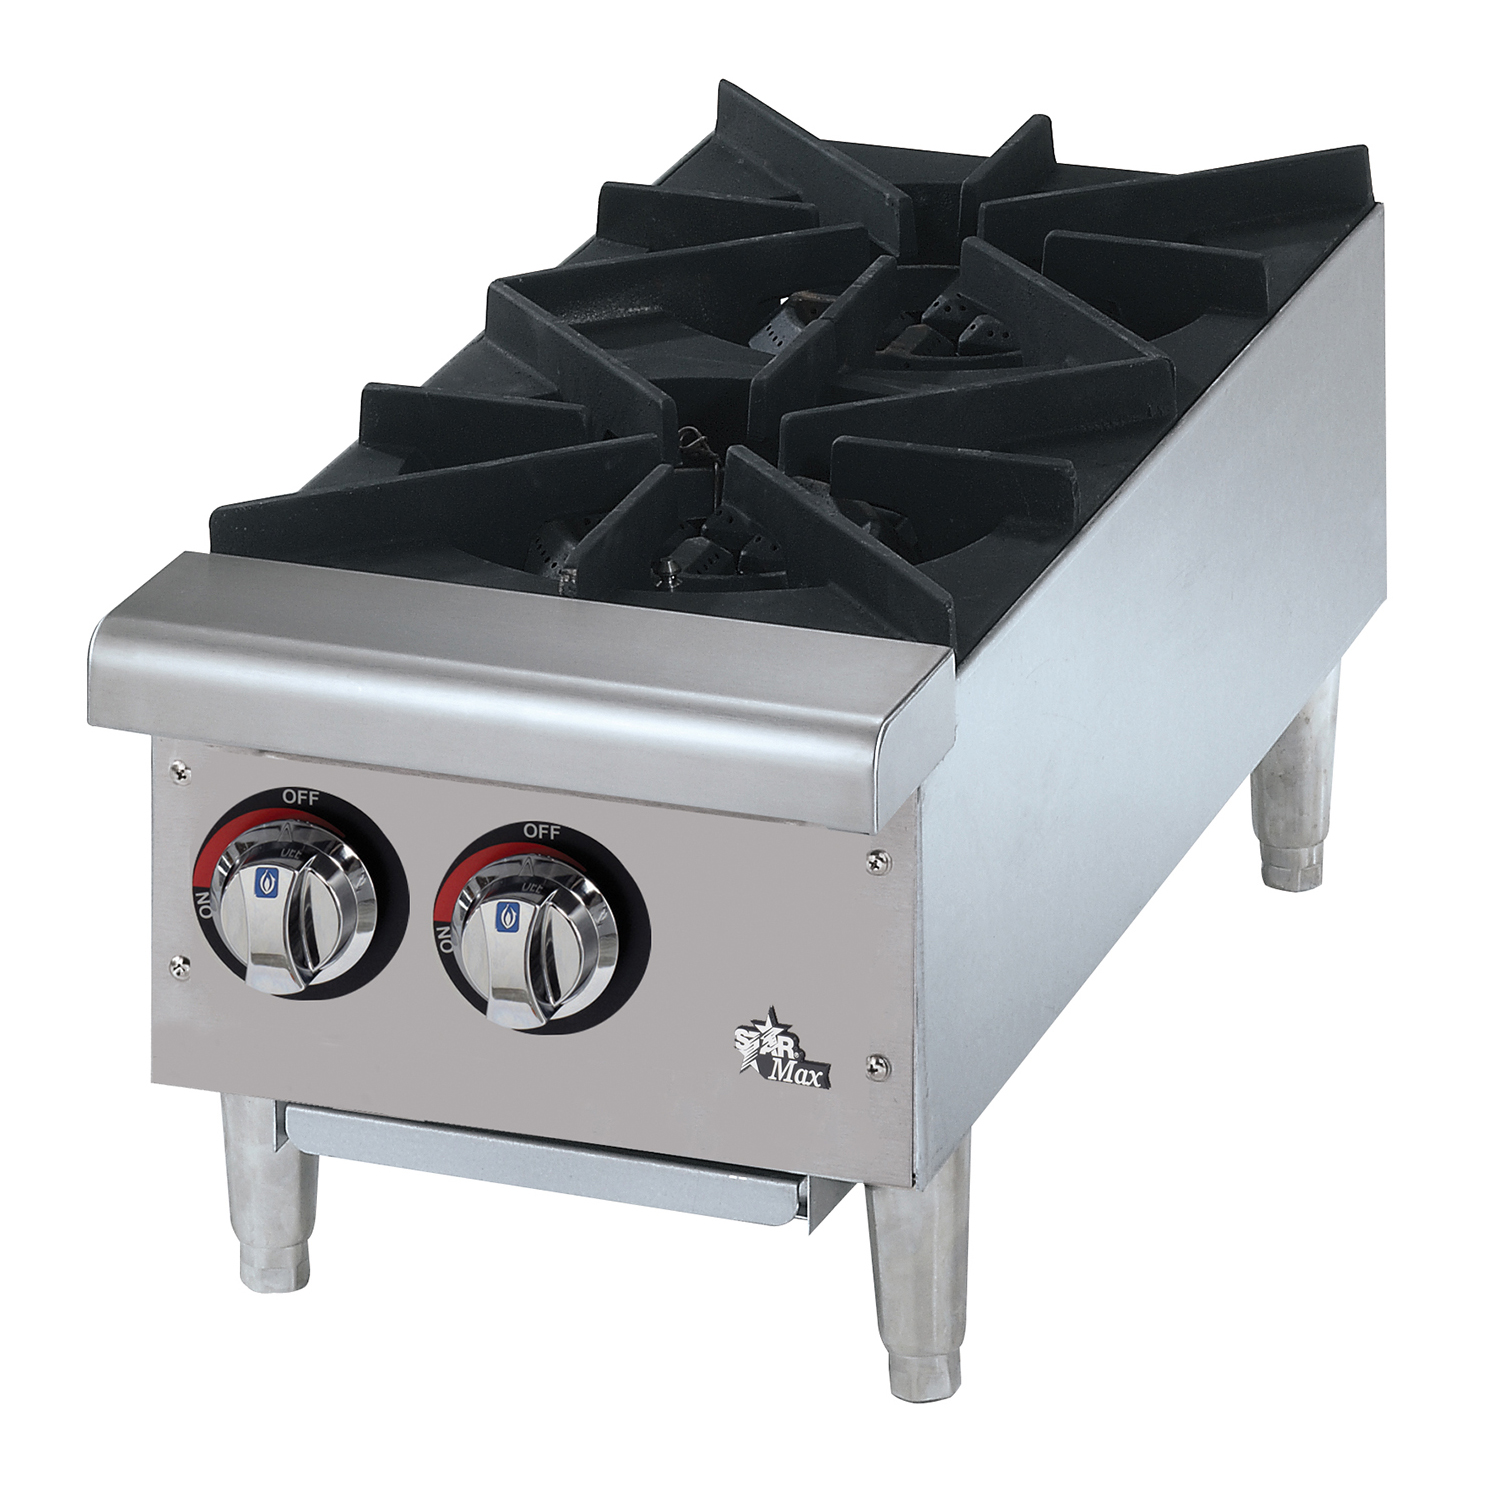 Star 602HF hotplate, countertop, gas